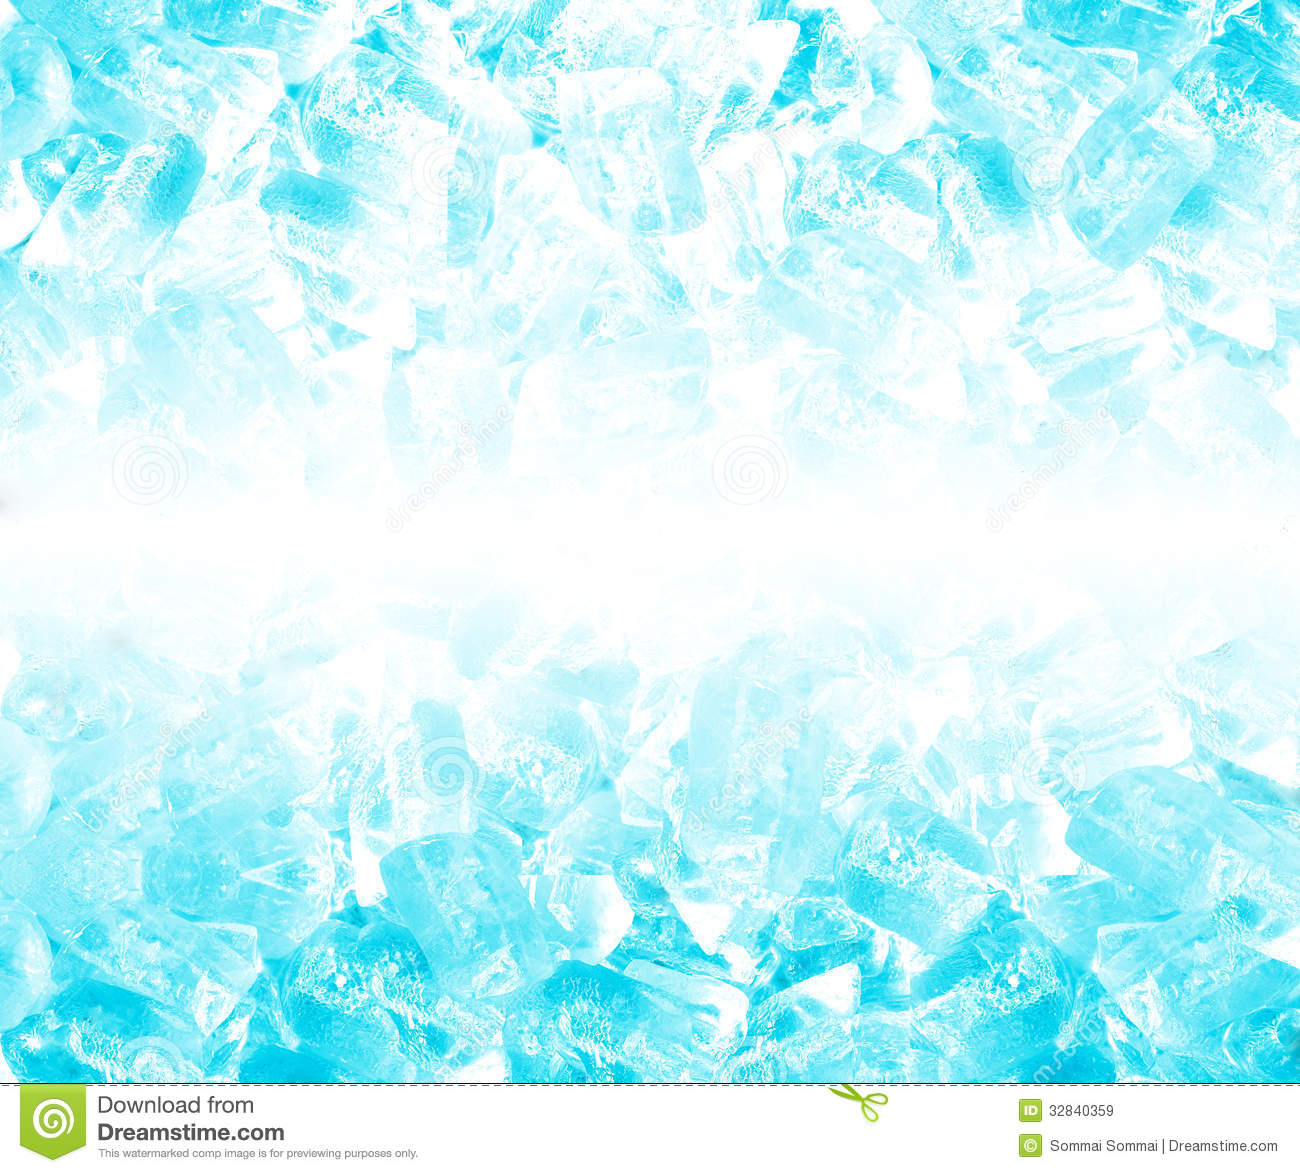 Background Of Blue Ice Cubes Royalty Free Stock Images - Image ...